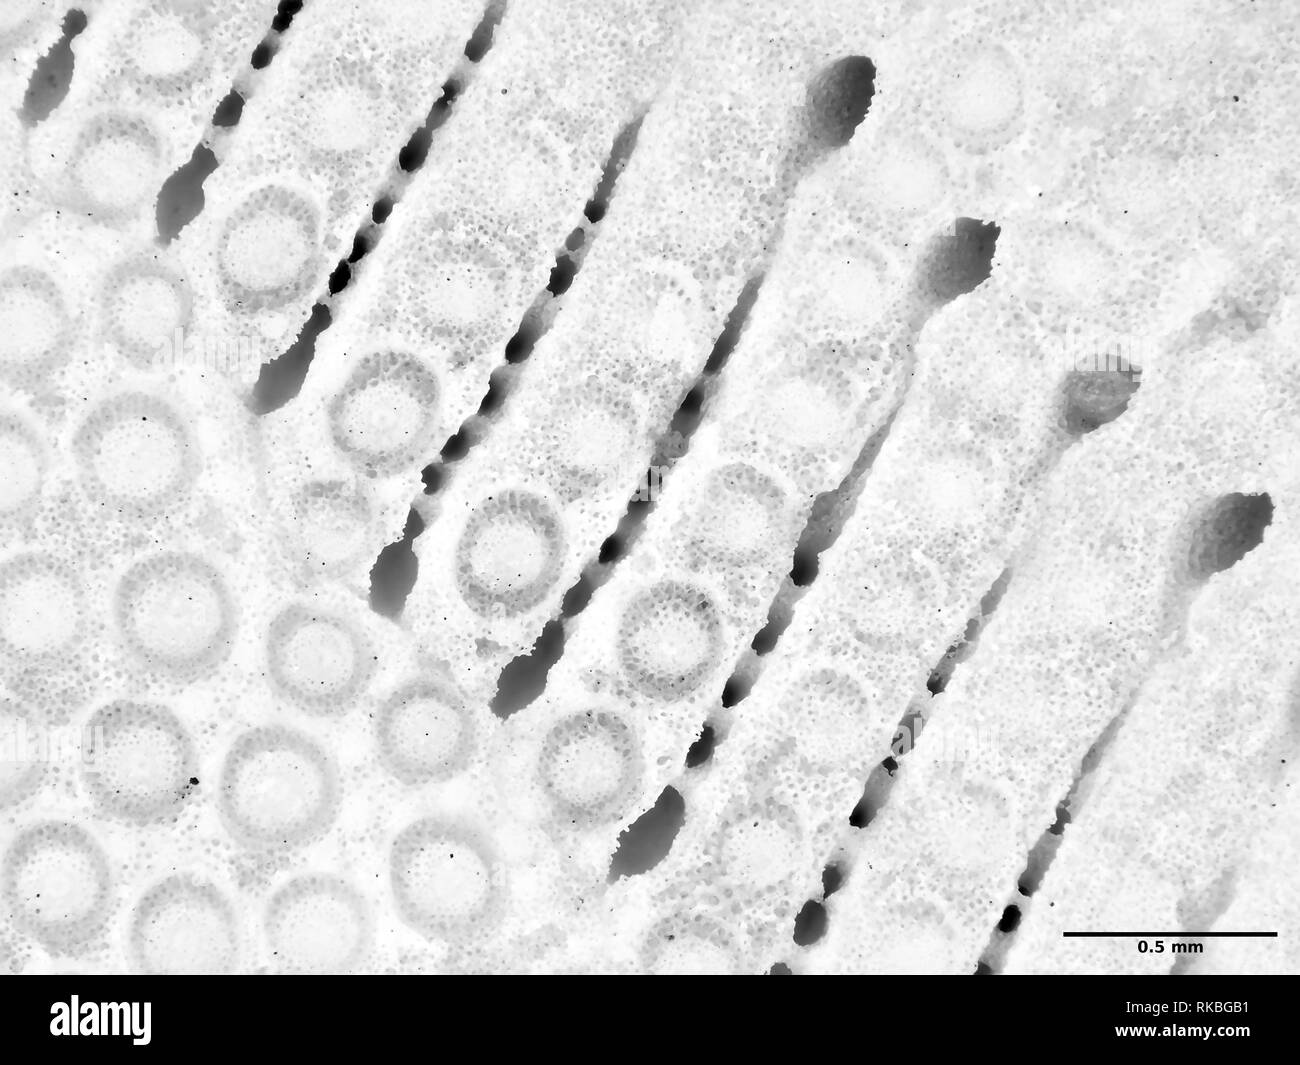 Extreme macro photography (micrograph) of sand dollar (Clypeasteroida) shell, field of view is about 3mm wide - Stock Image